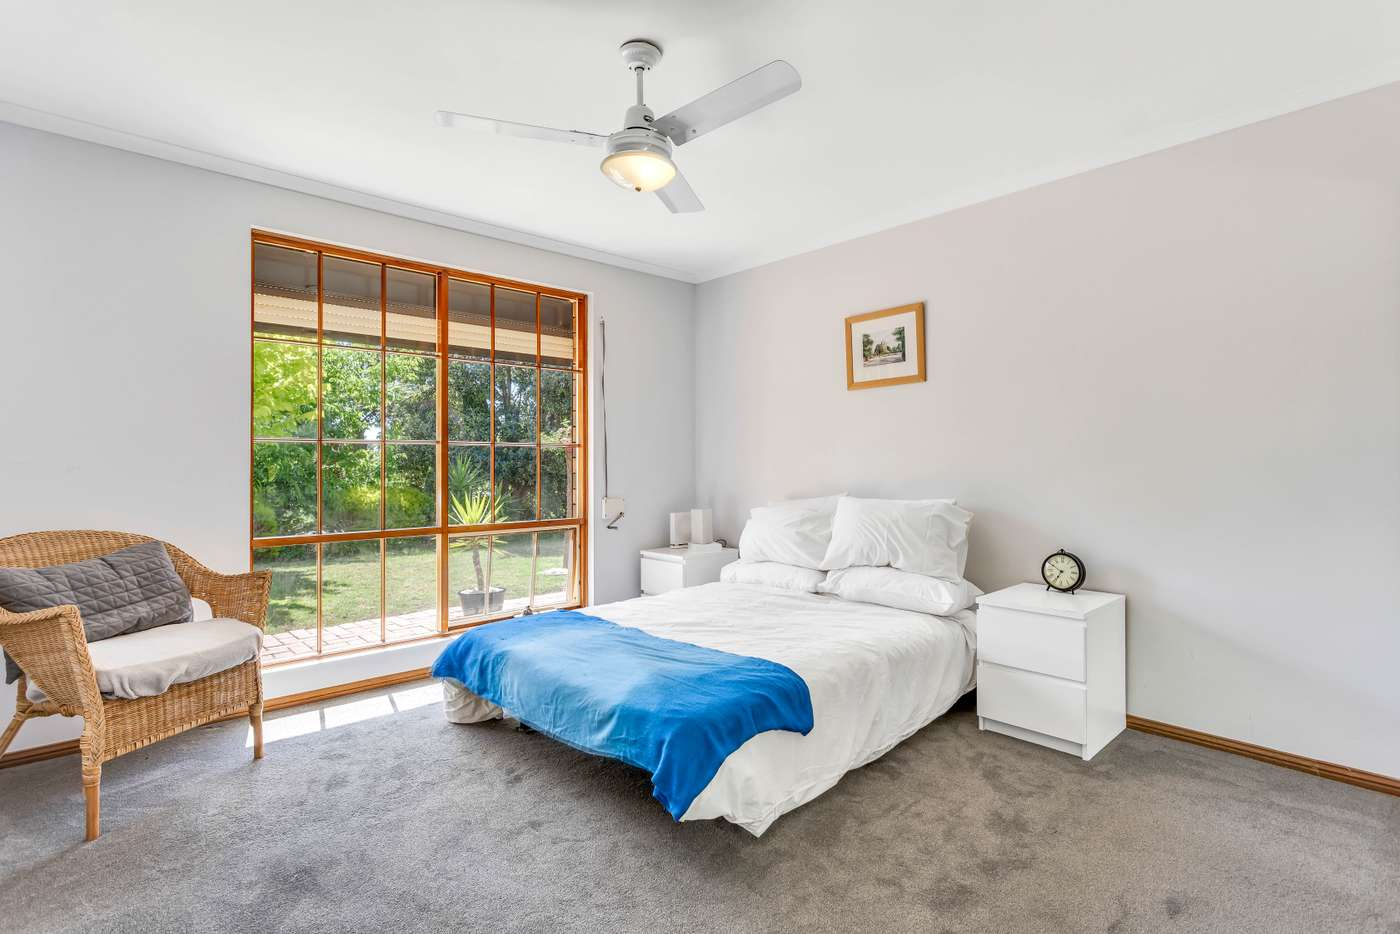 Sixth view of Homely house listing, 182 States Road, Morphett Vale SA 5162